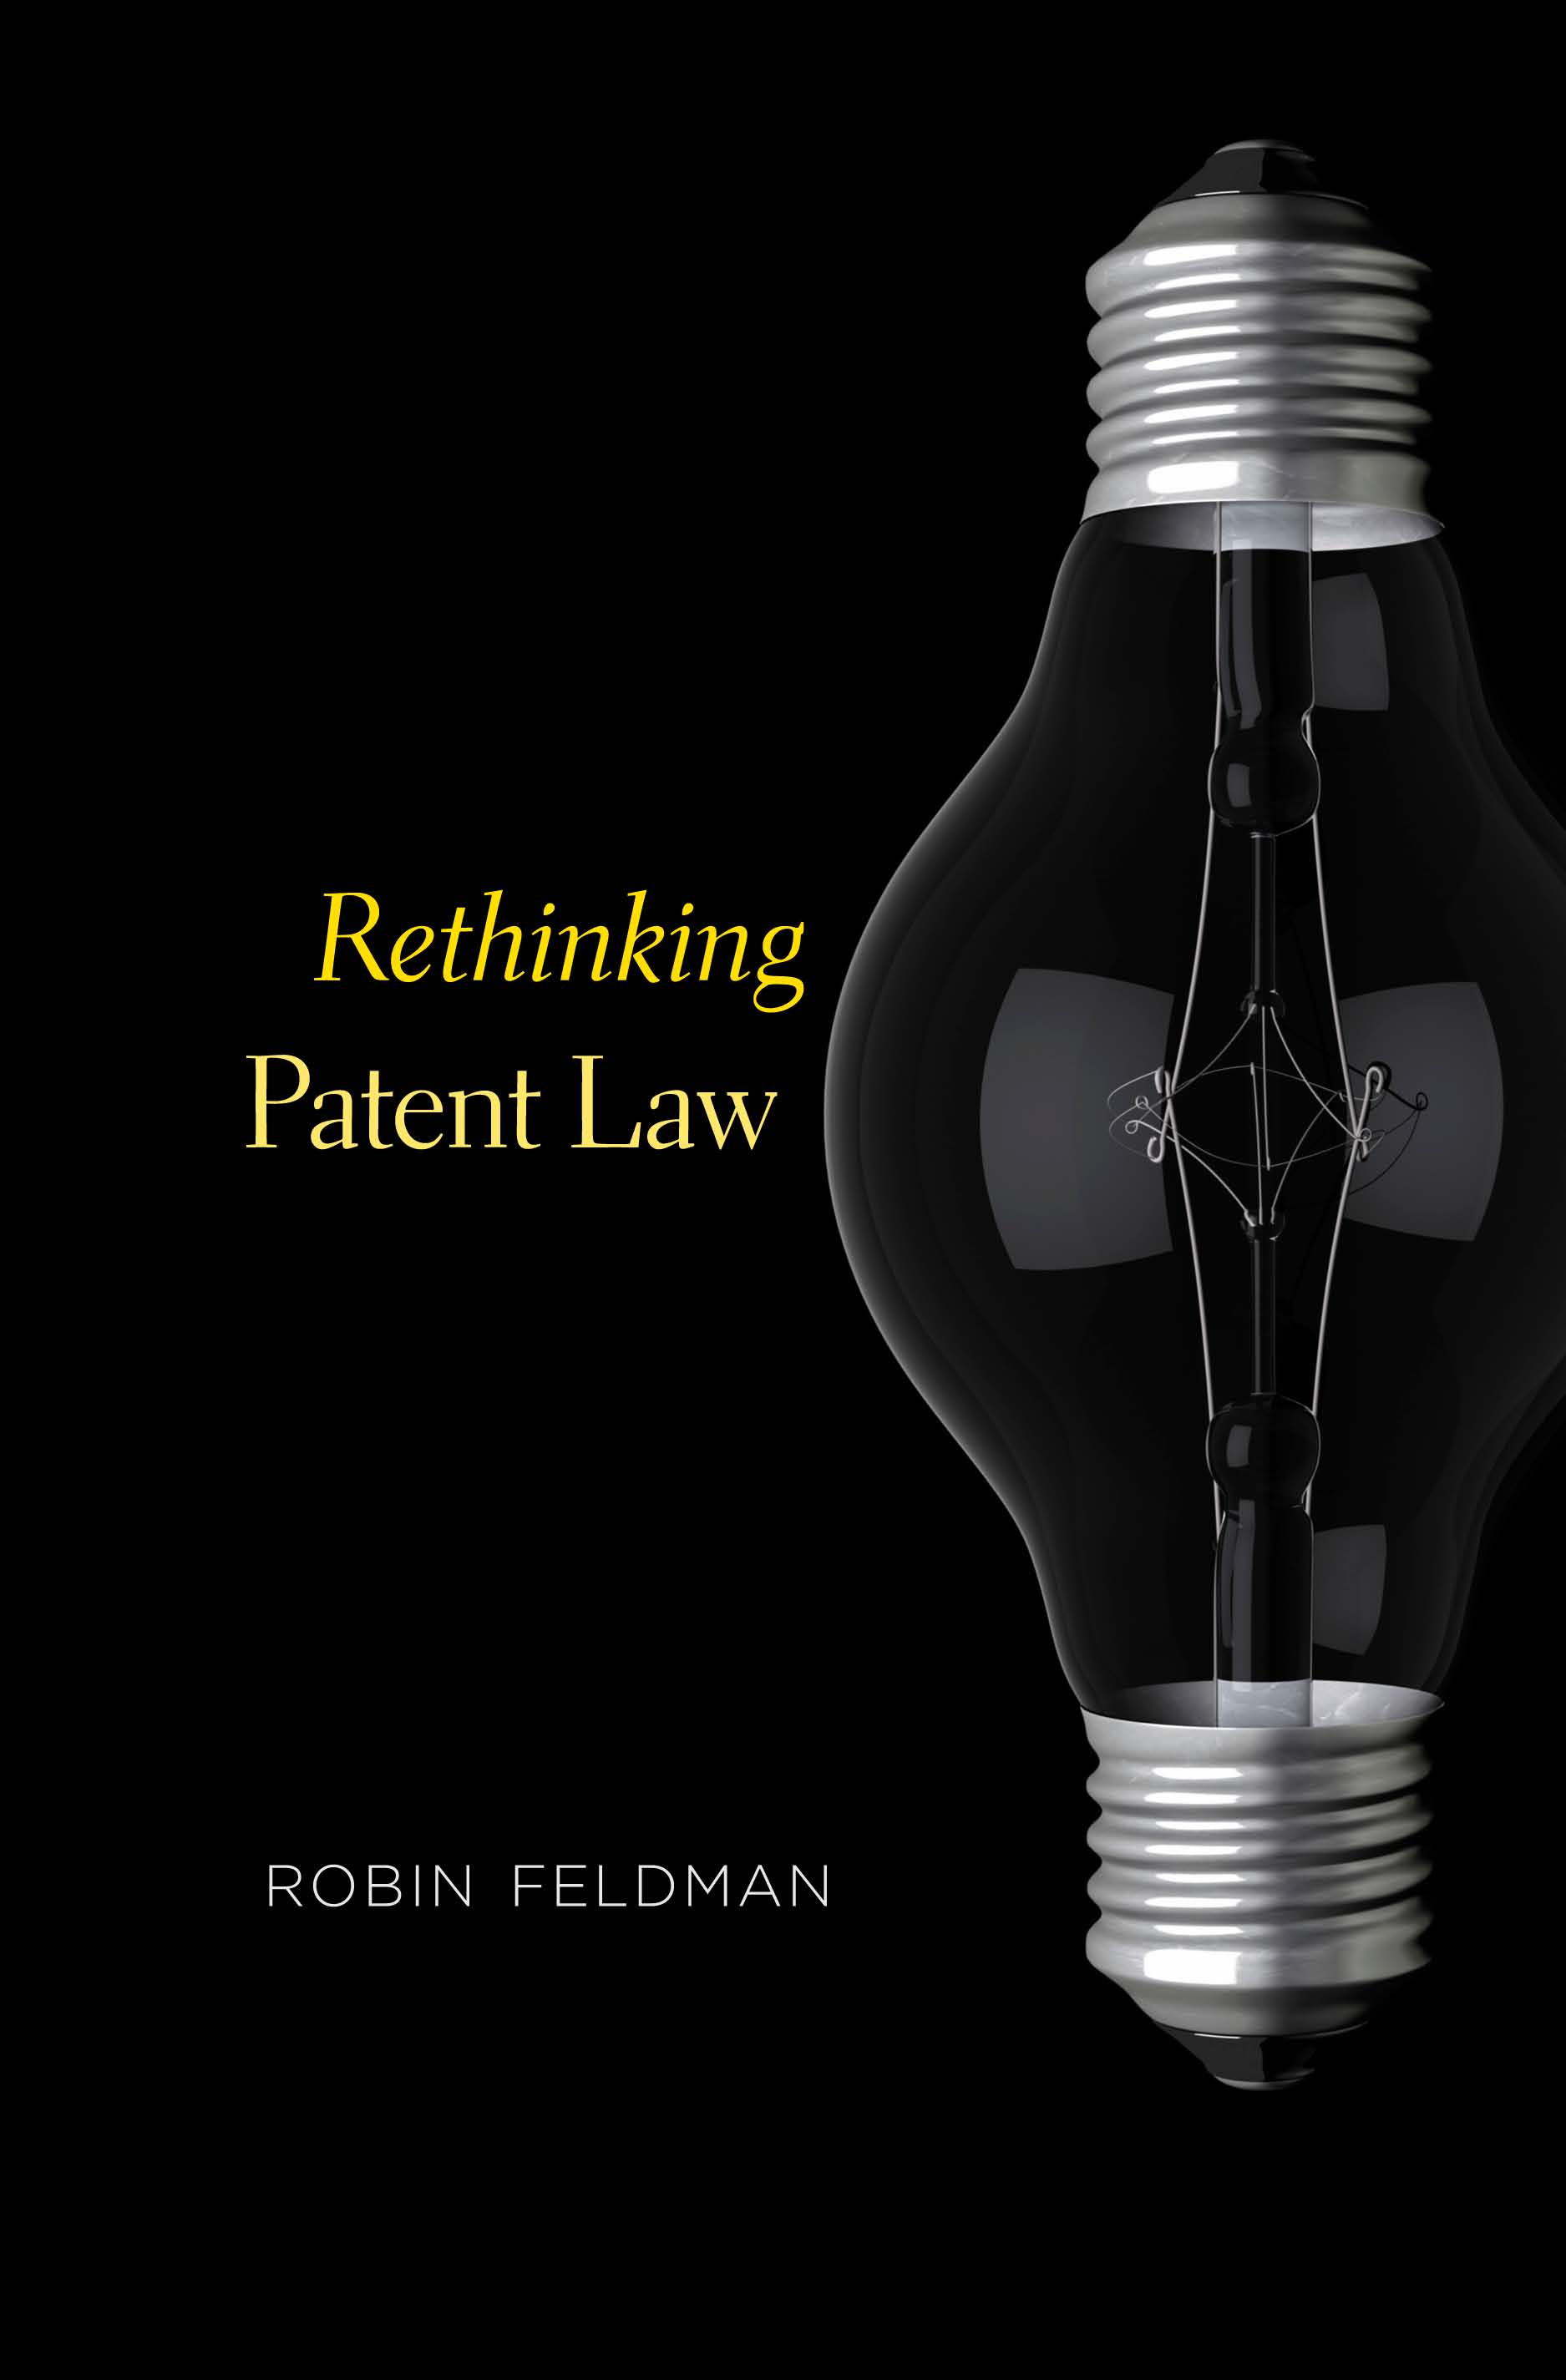 Rethinking Patent Law